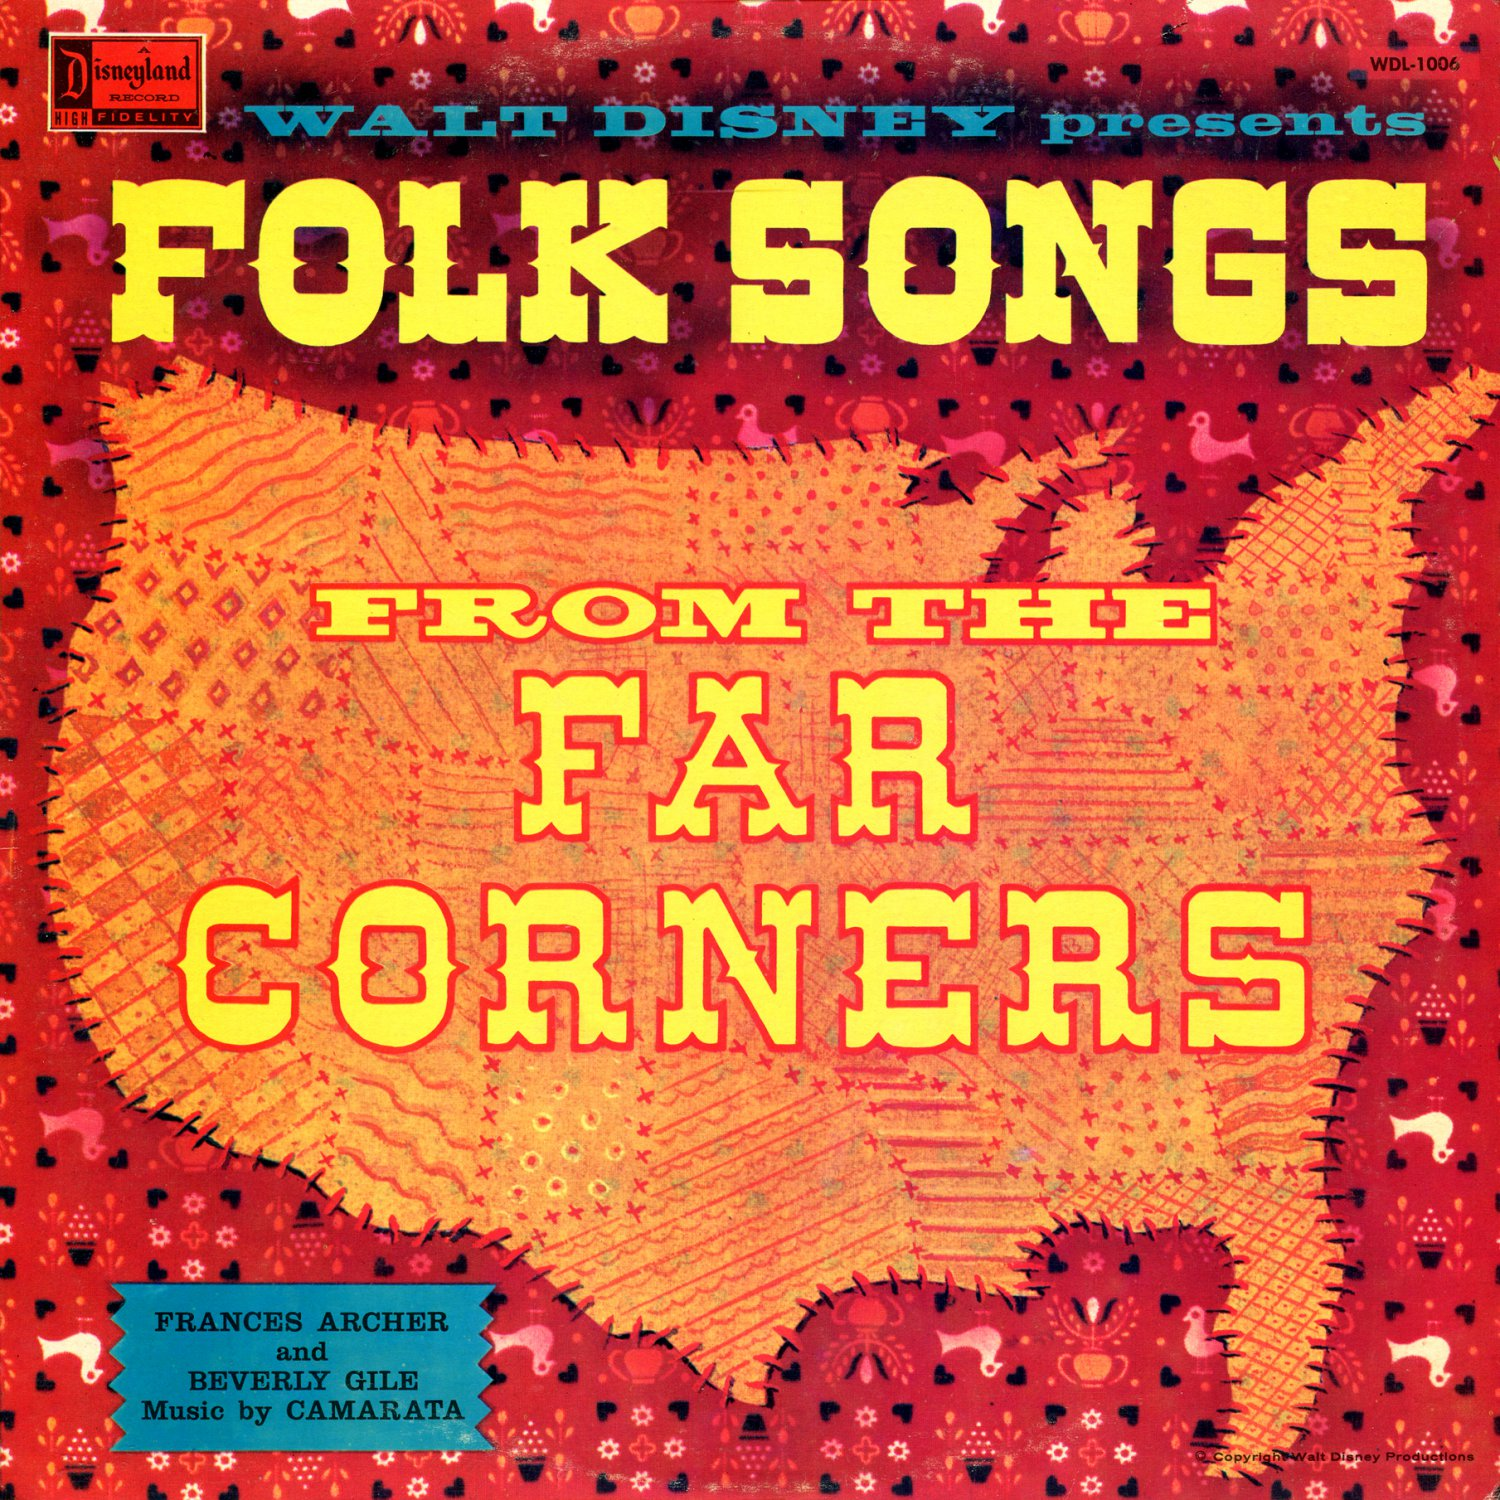 Walt Disney presents Folk Songs From The Far Corners - Music Collection LP/CD